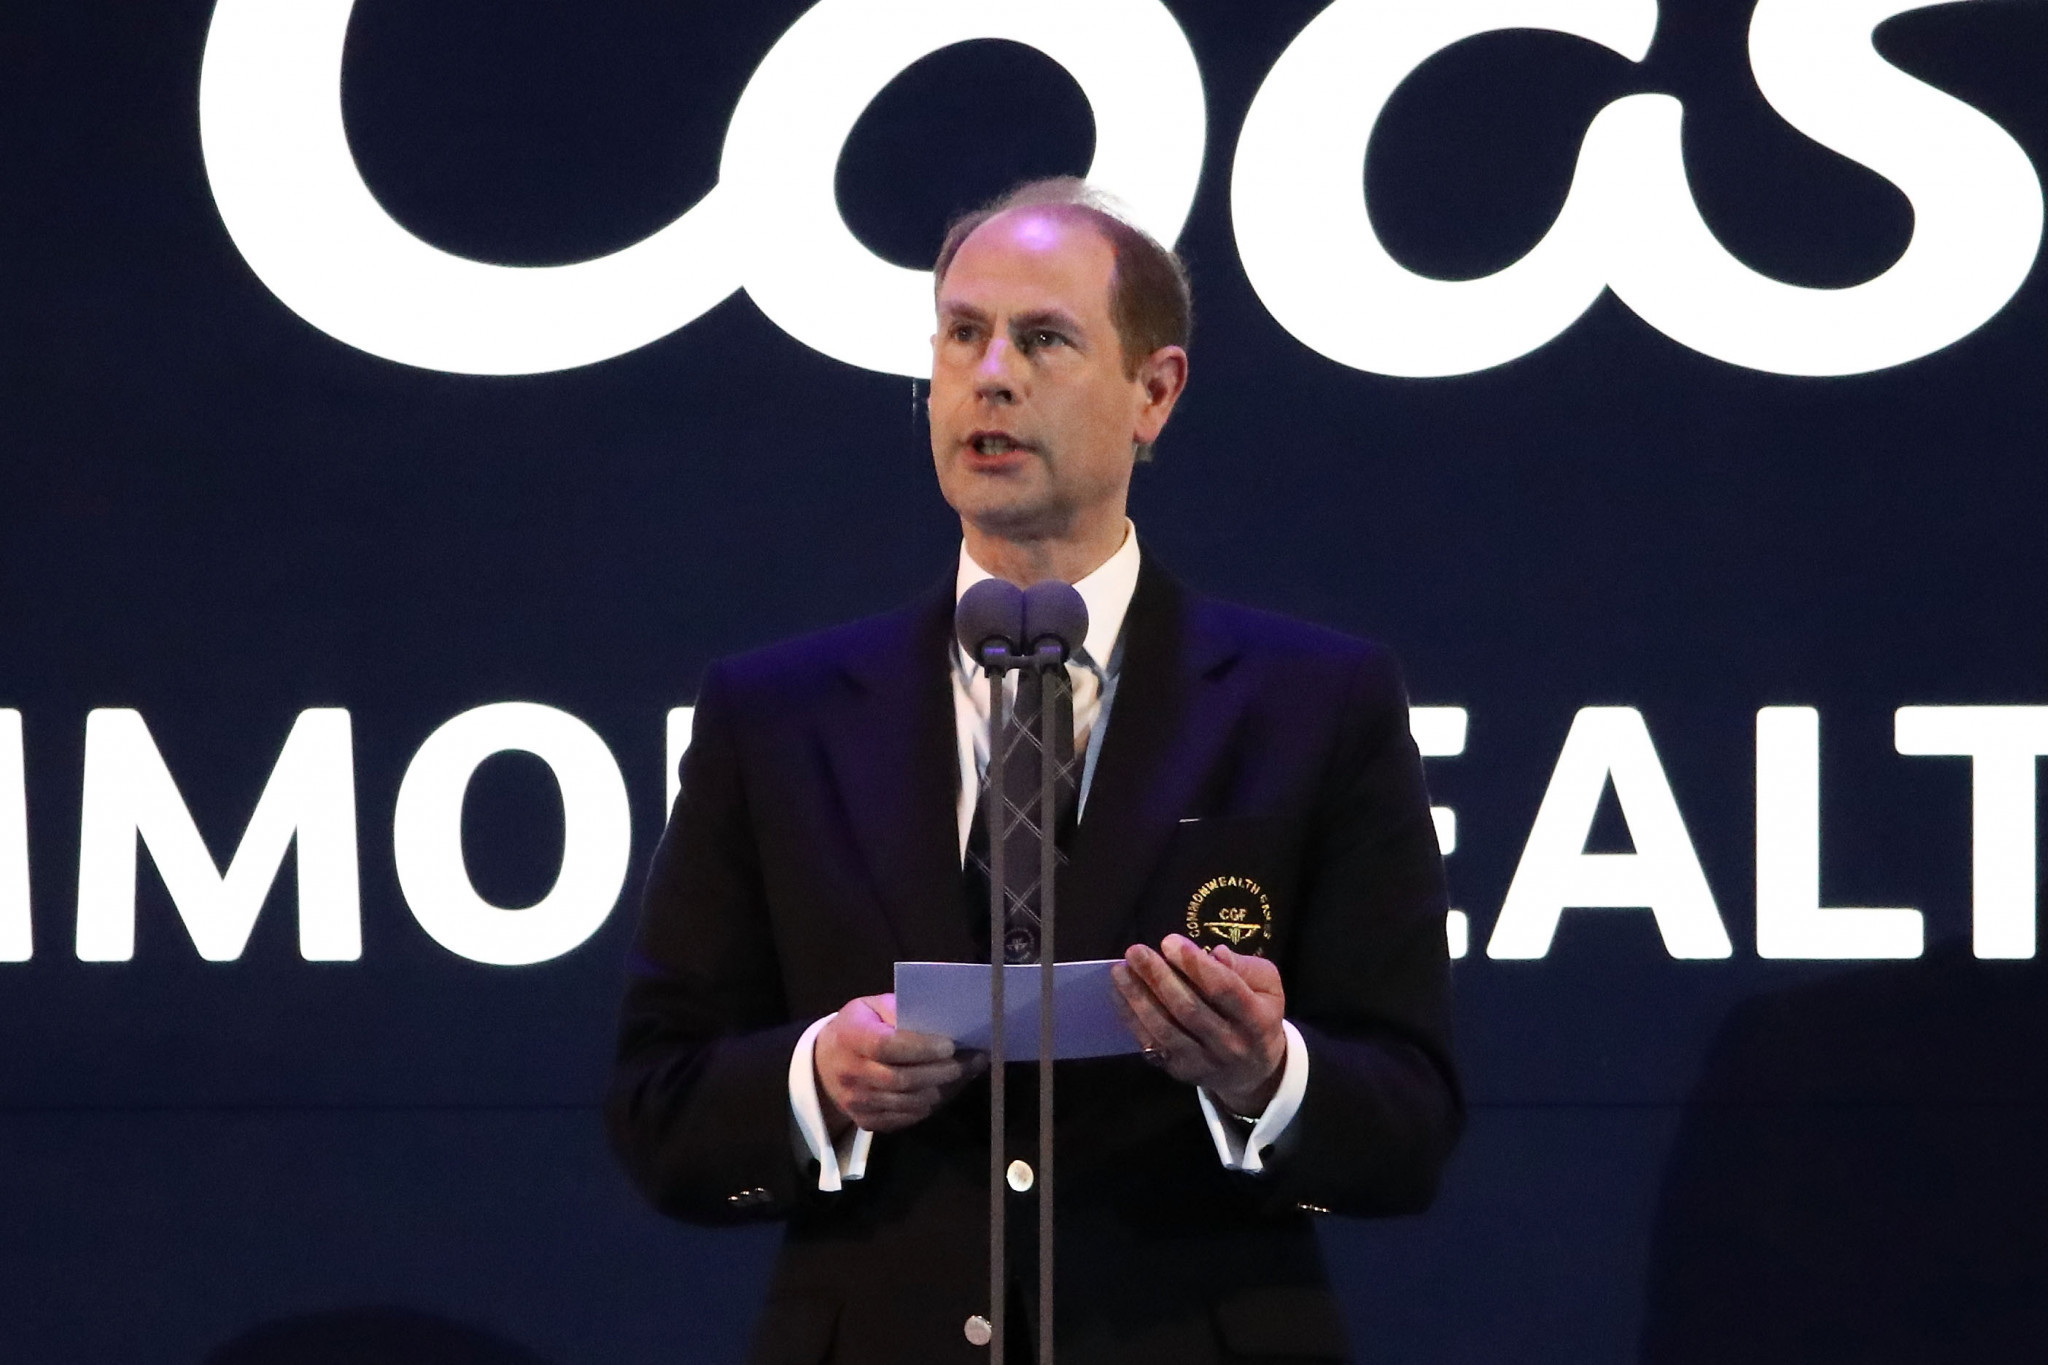 Prince Edward declares Gold Coast 2018 closed as flag passed to Birmingham 2022 in ordinary Closing Ceremony